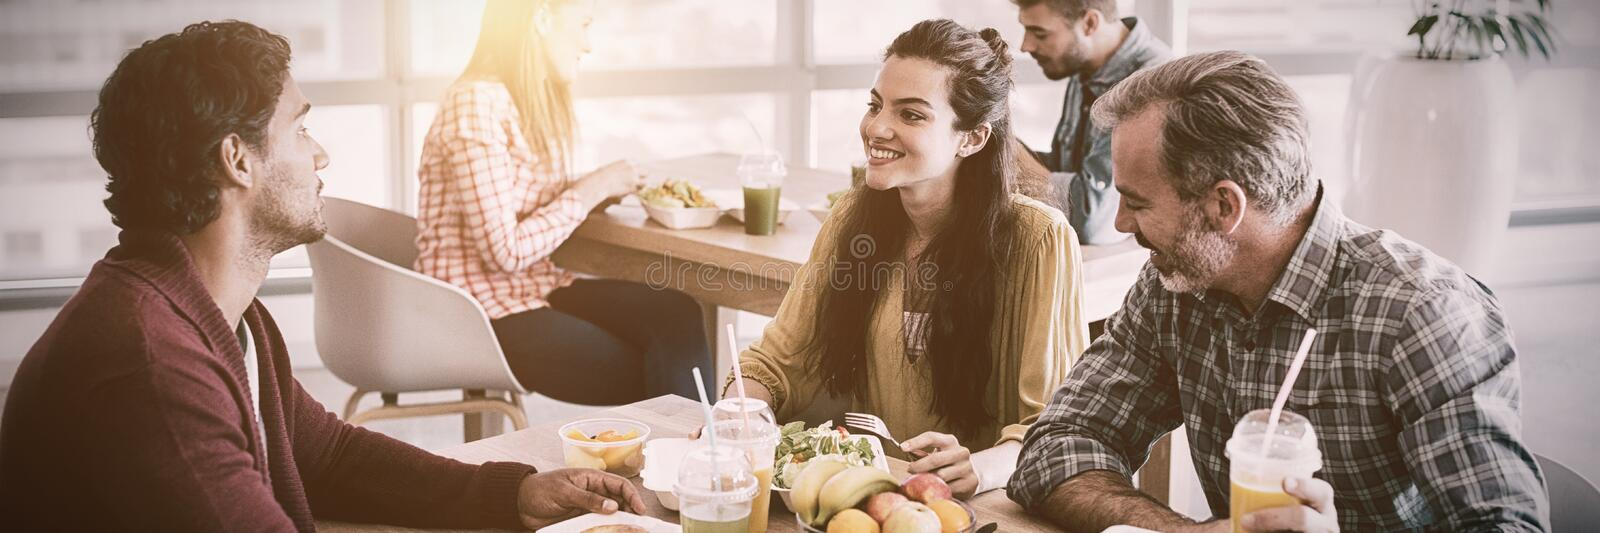 Creative business team discussing while having meal stock photos